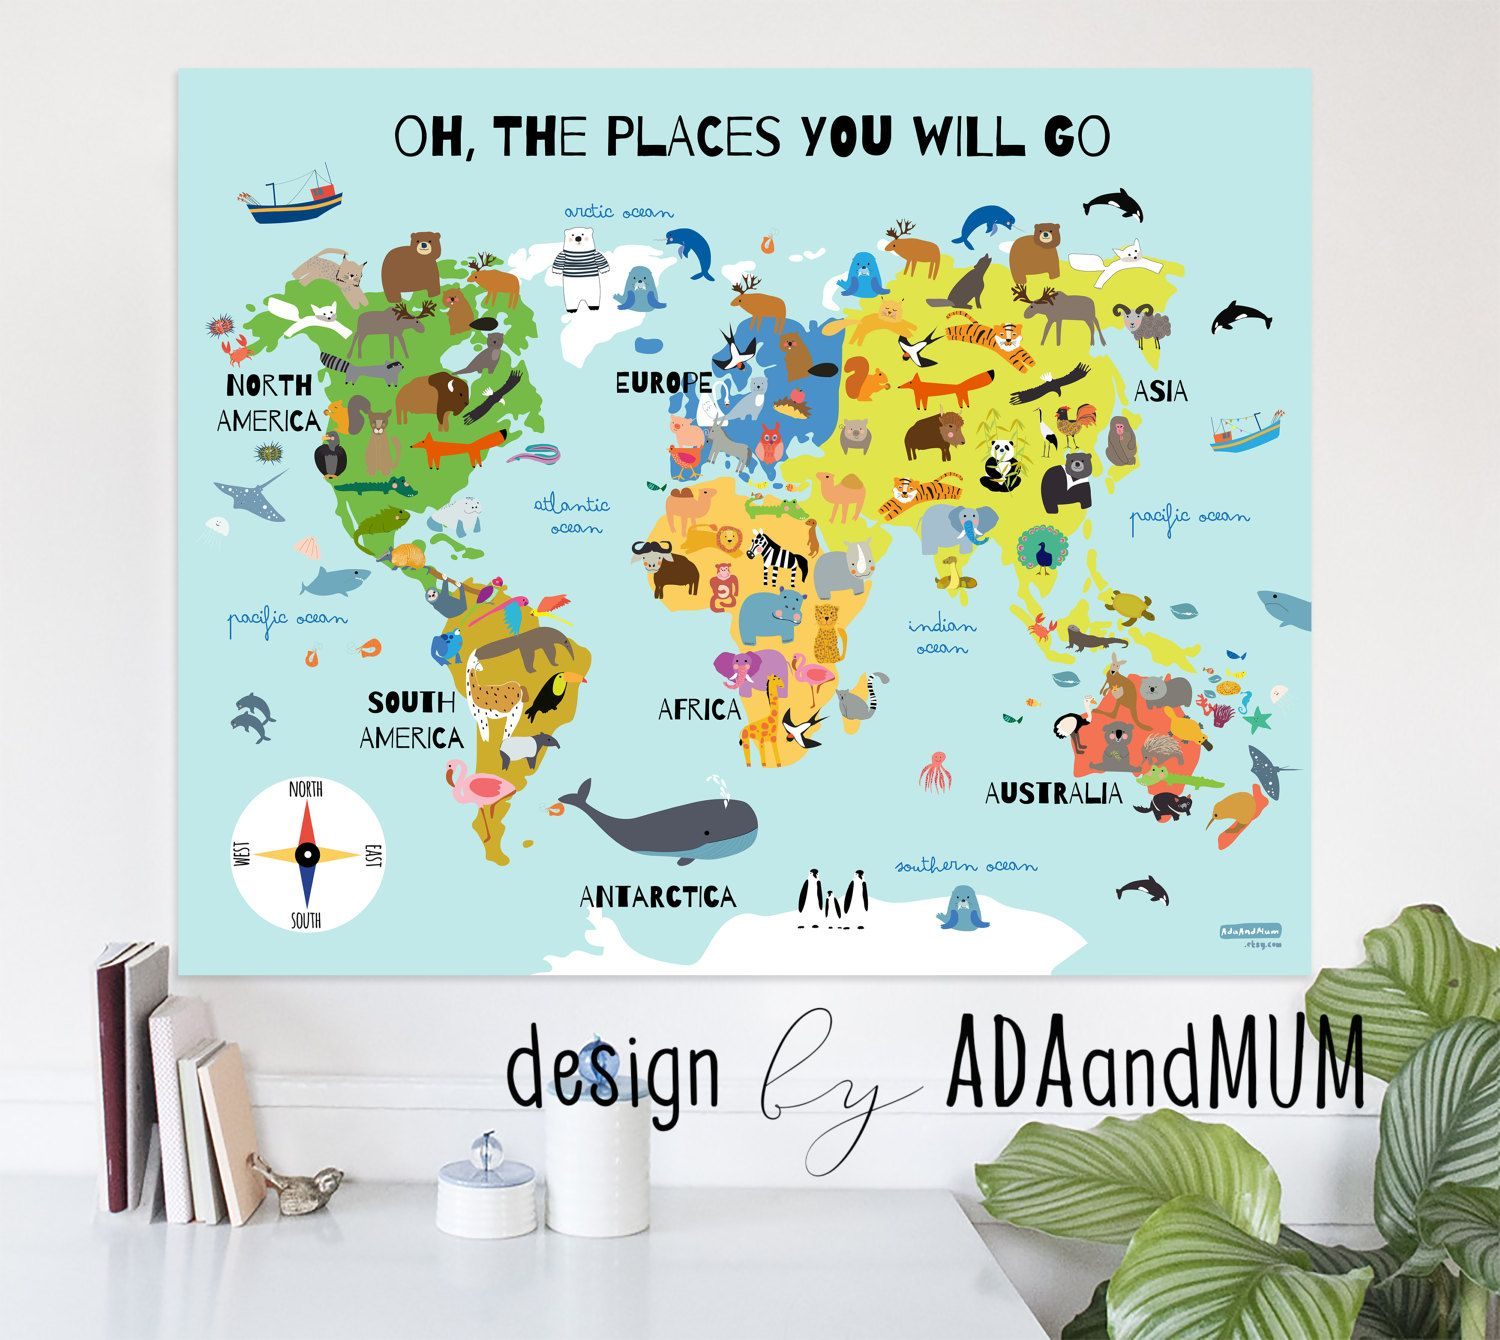 Animal planet world map for kids continents oceans animals animal planet world map for kids continents oceans animals compass gumiabroncs Image collections